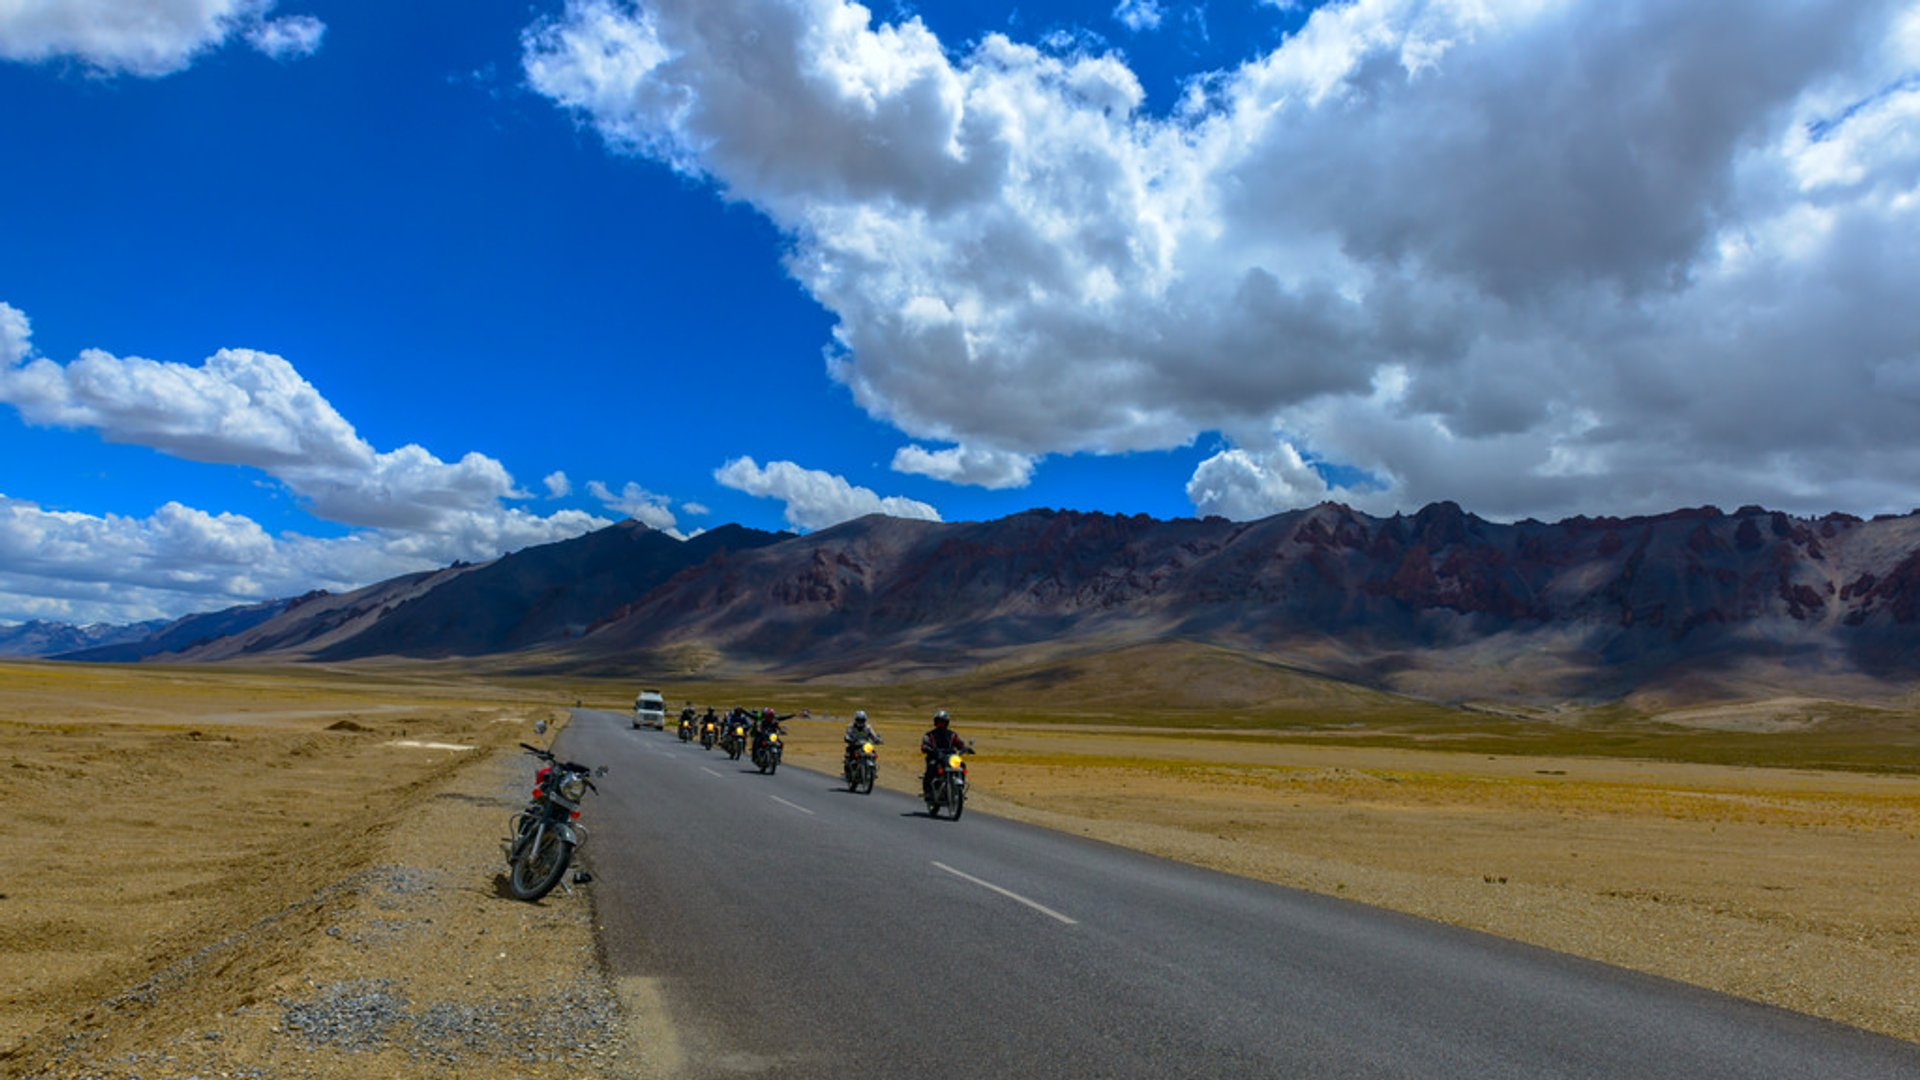 Manali to Leh Highway 2020